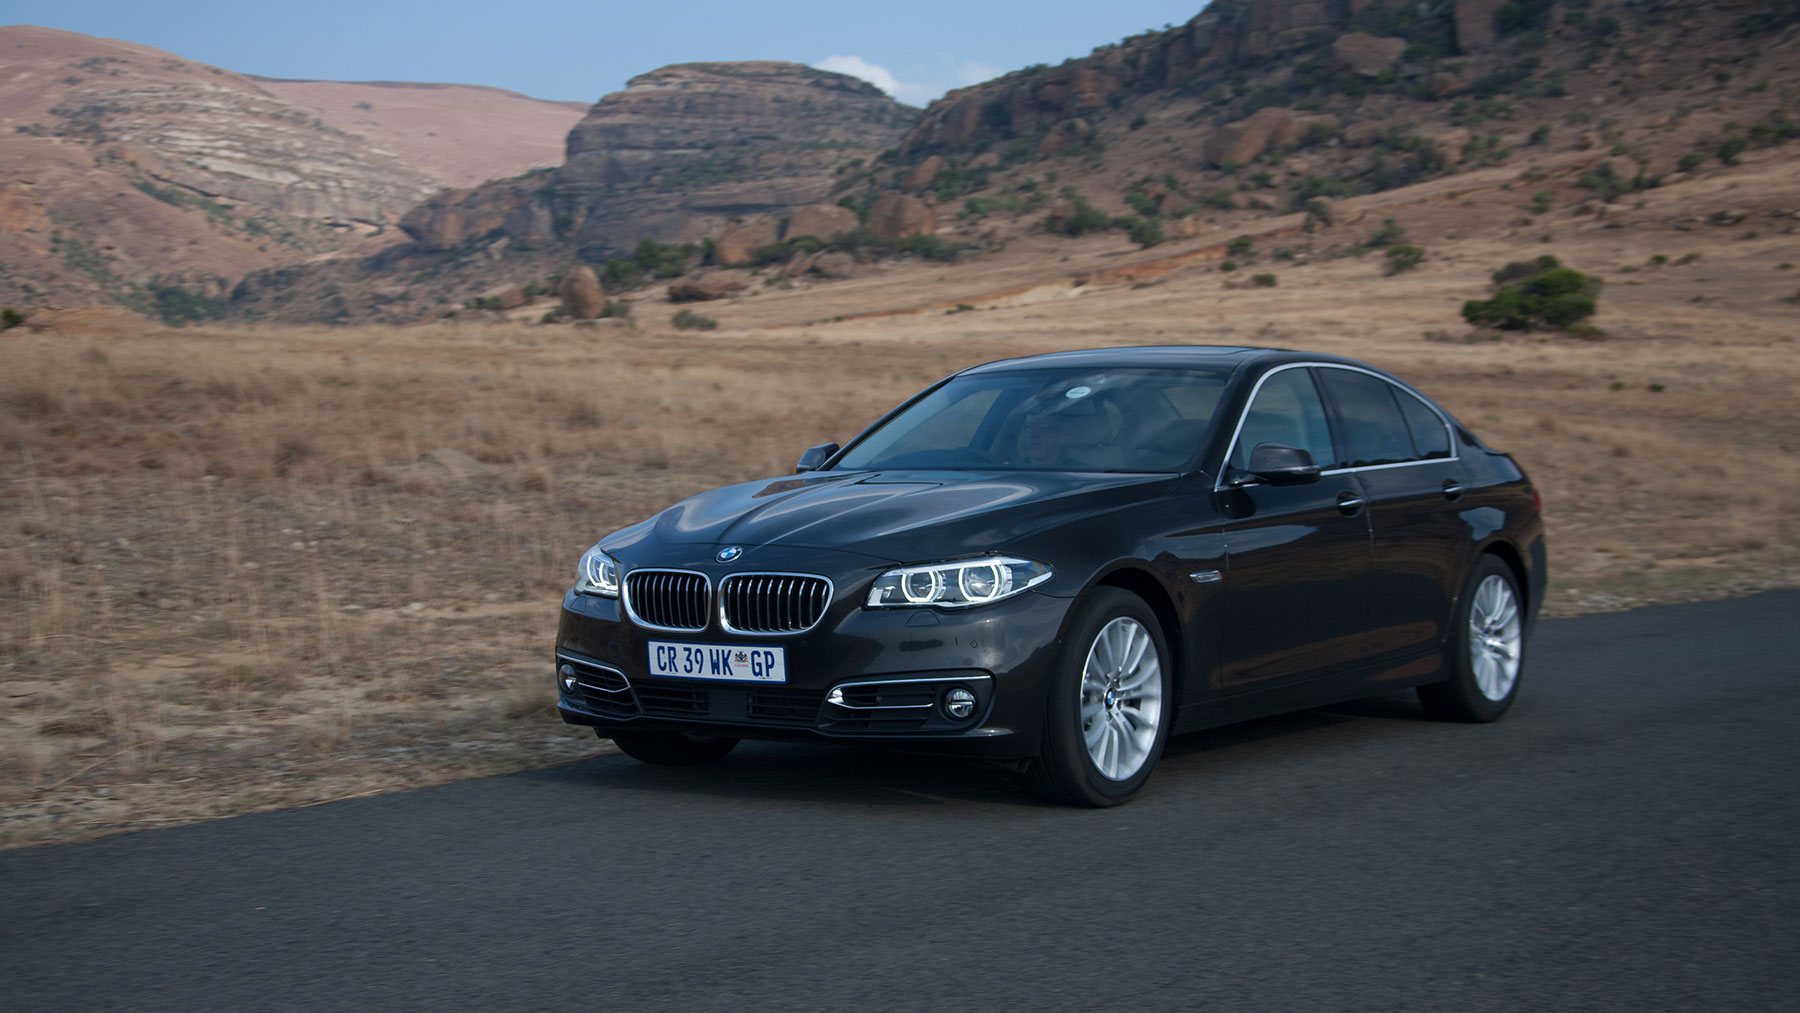 Bmw 535i 2014 Review Amazing Pictures And Images Look